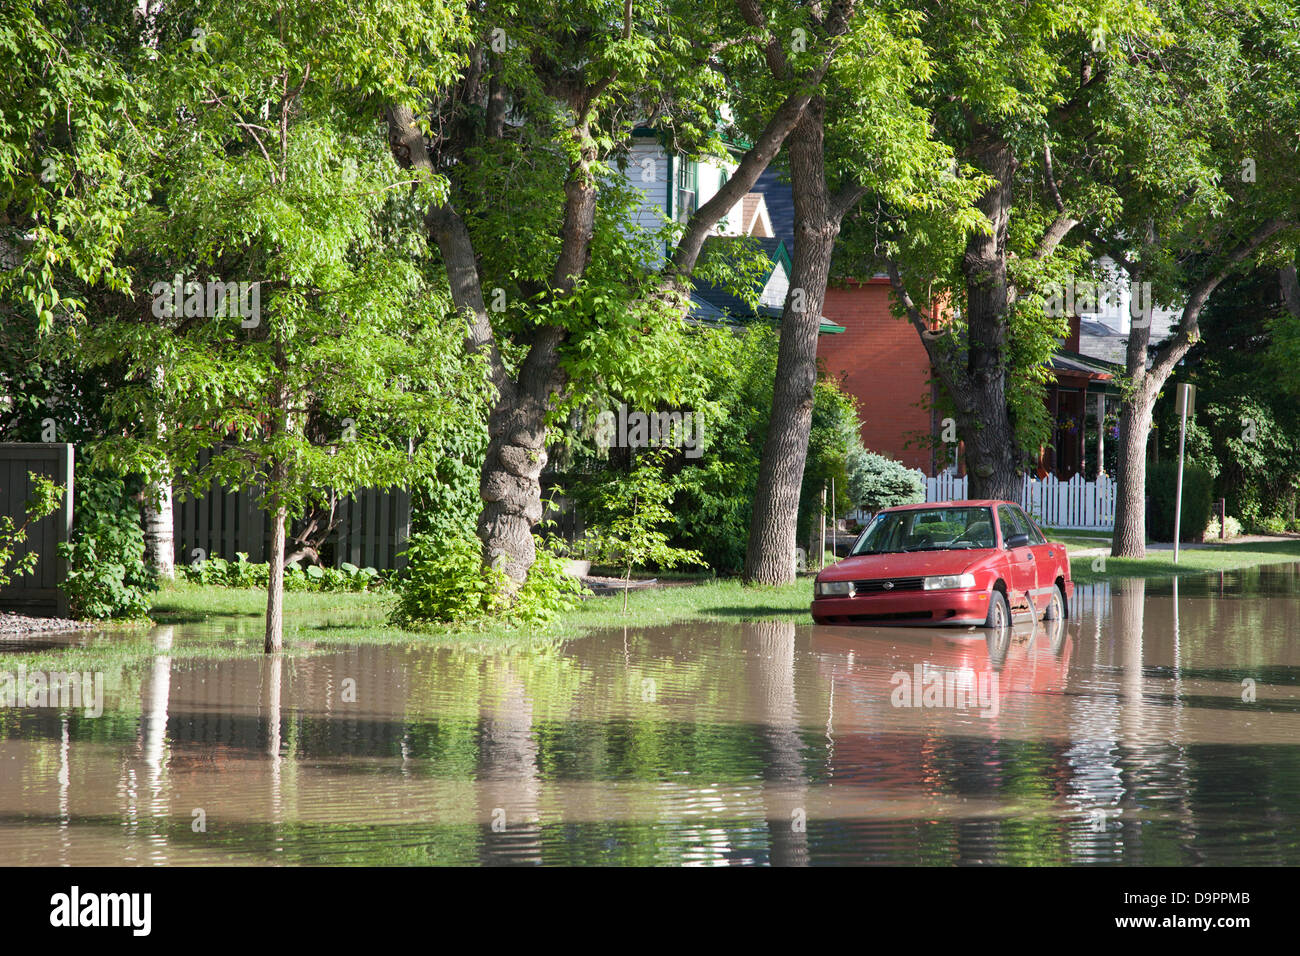 Saturday, June 22, 2013. A car trapped by floodwaters in the Sunnyside neighbourhood of Calgary, Alberta, Canada. Stock Photo